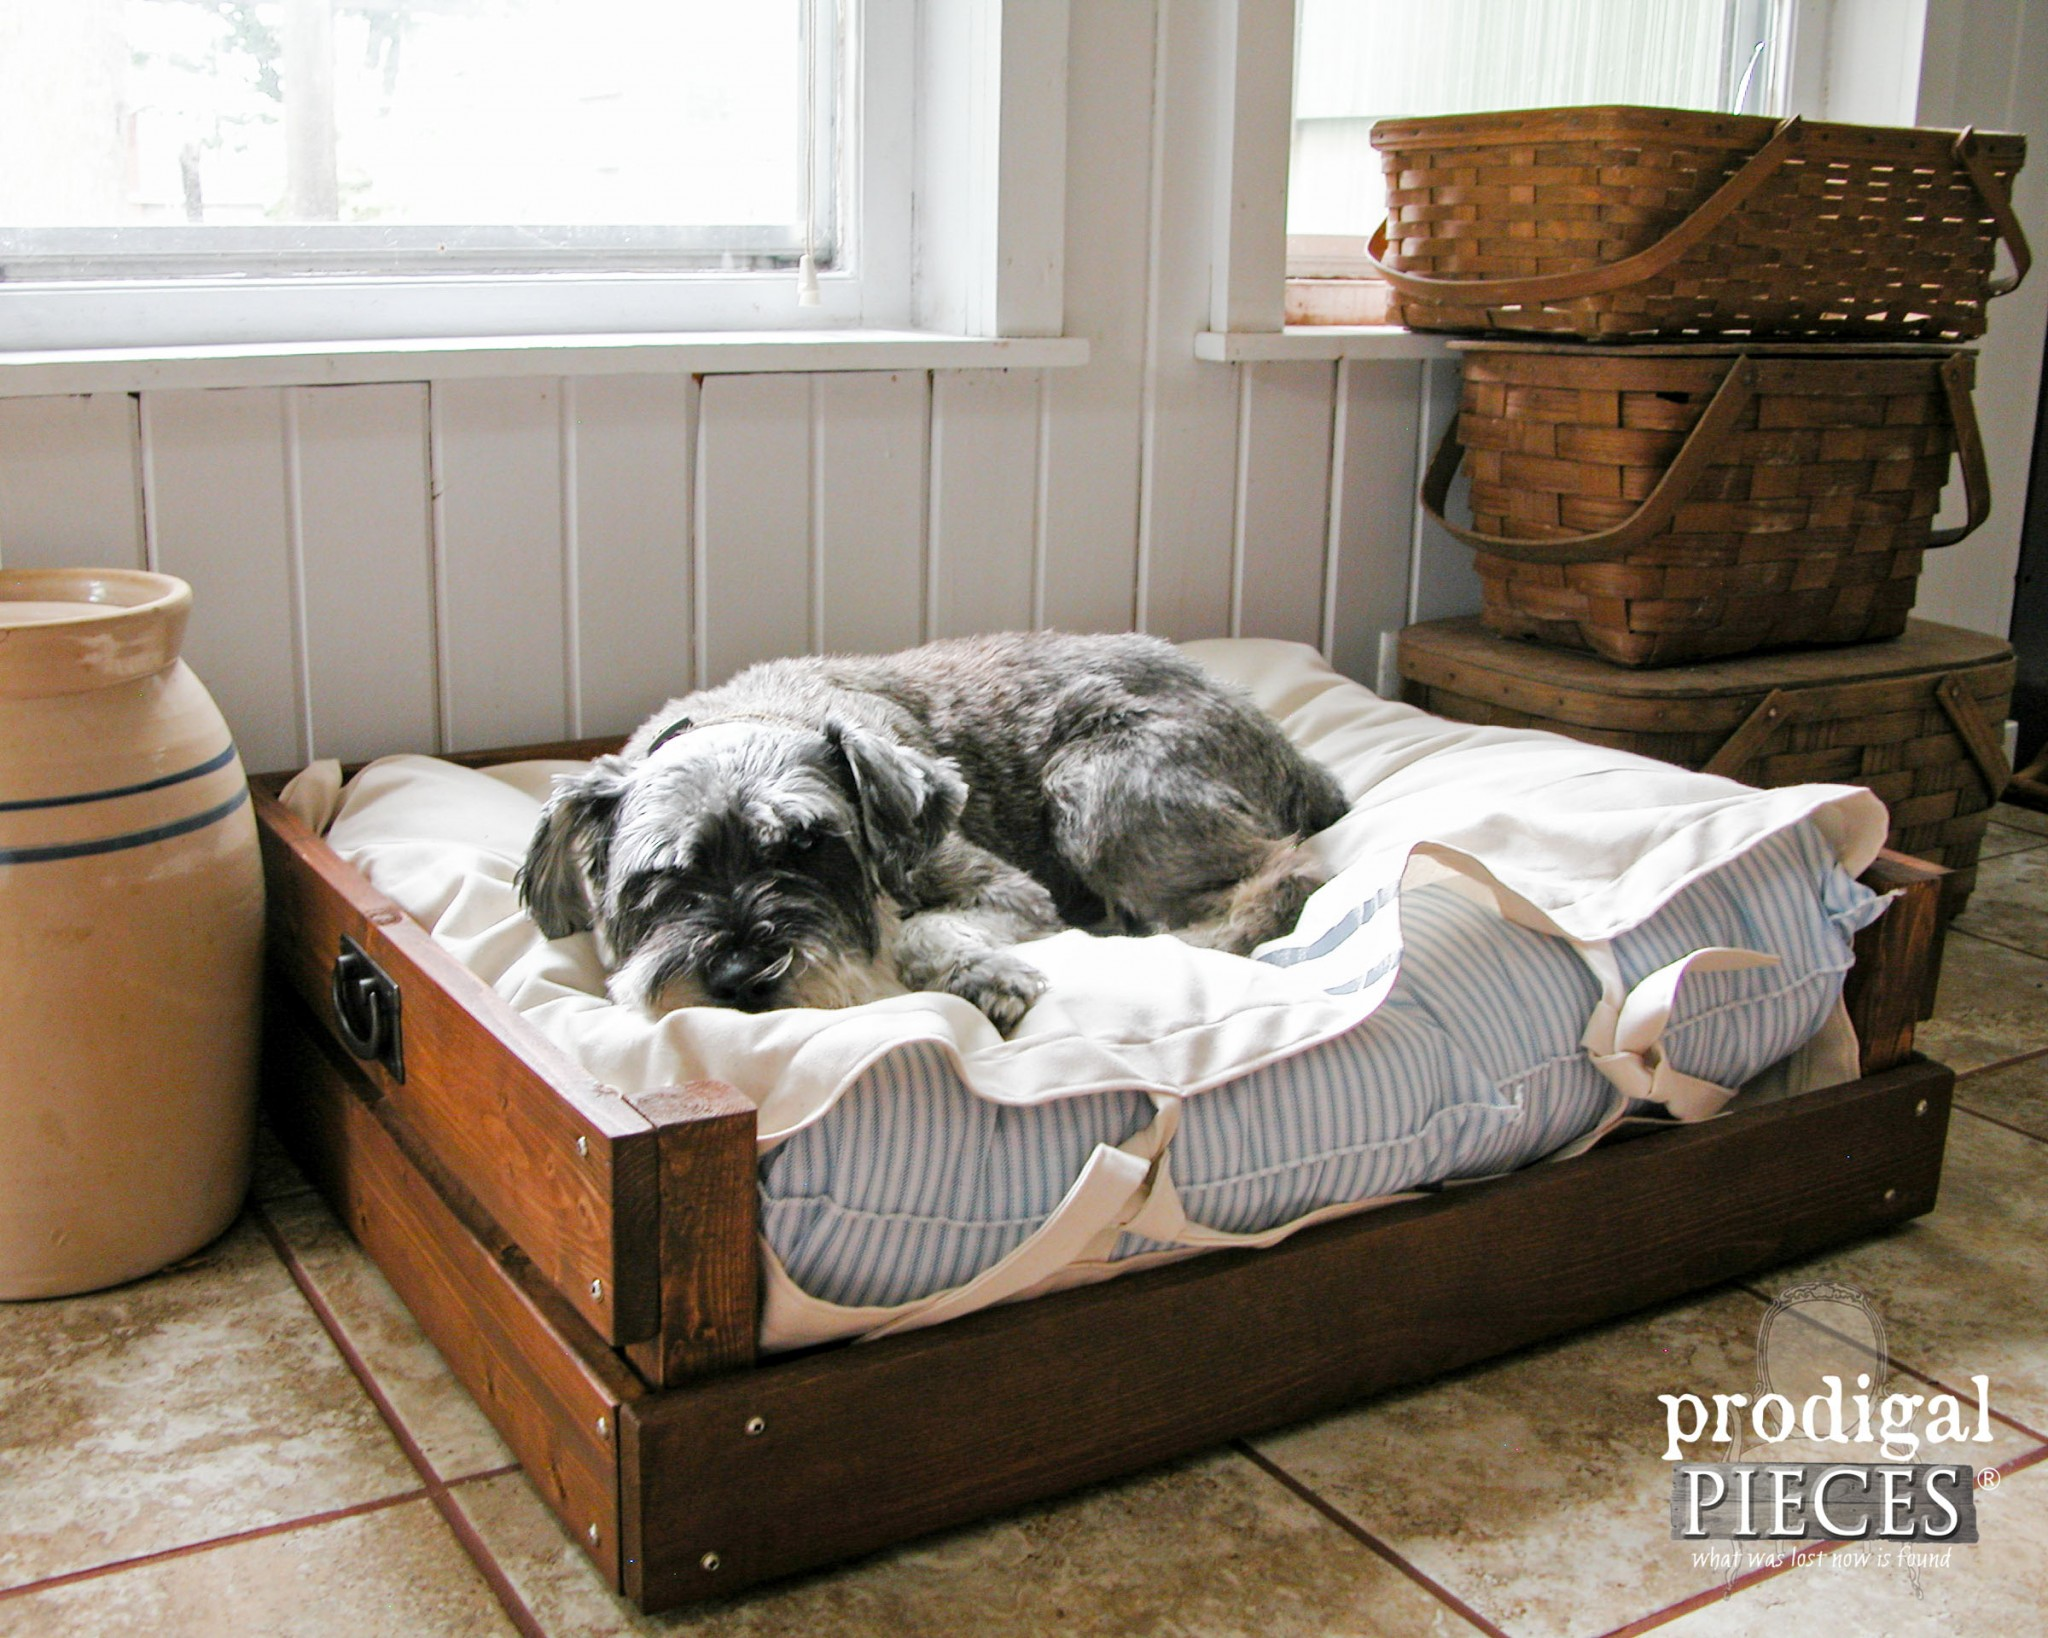 Rustic Farmhouse Grain Sack Style Pet Bed with Plans & Tutorial by Prodigal Pieces | prodigalpieces.com